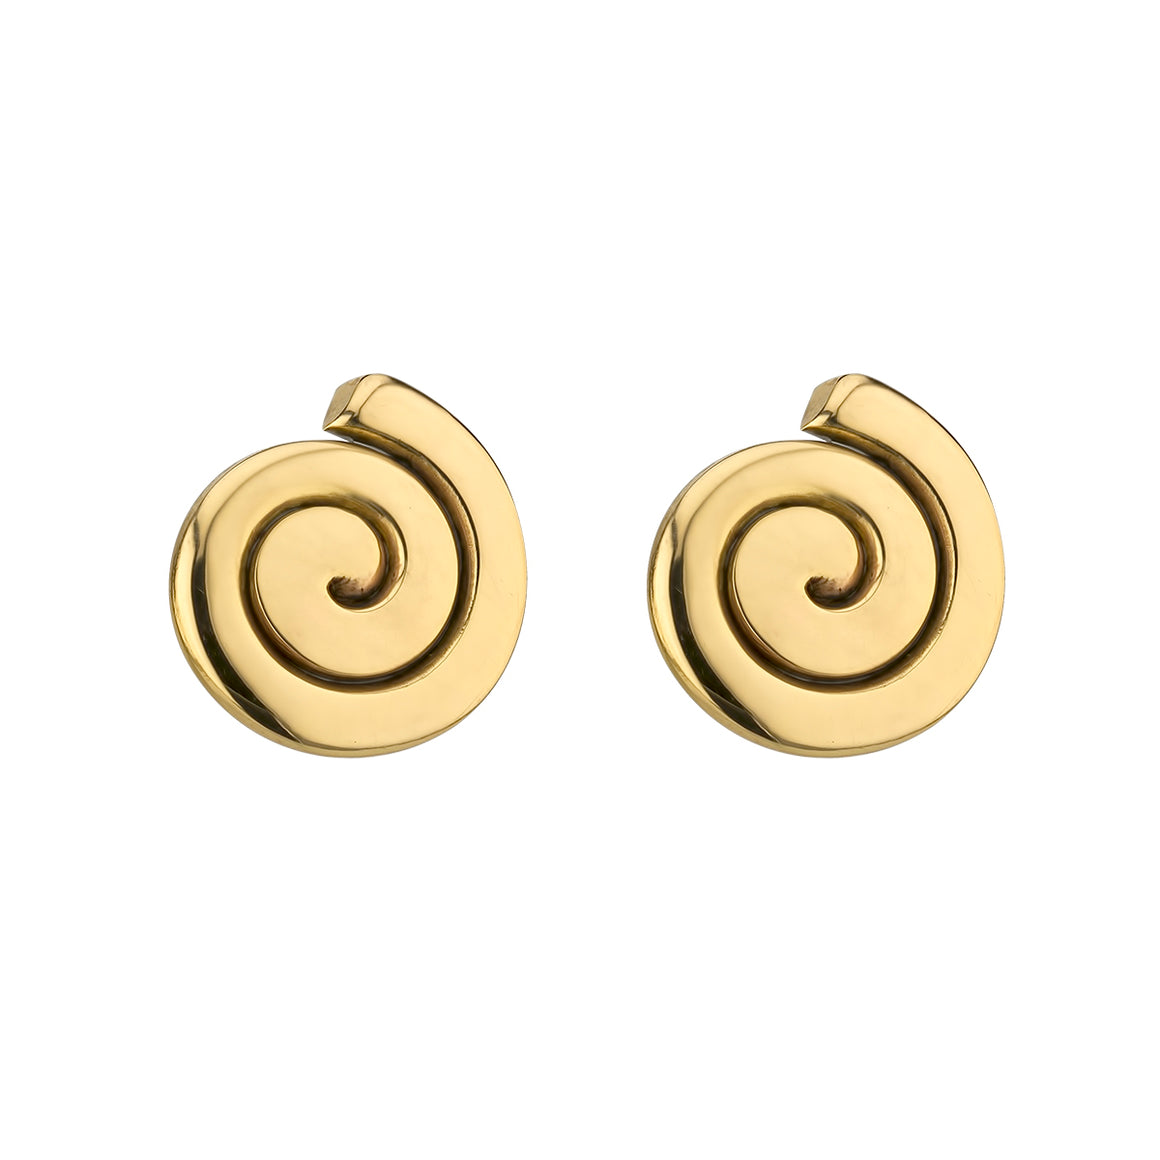 Gold Spiral Stud Earrings by Grange Celtic jewellery